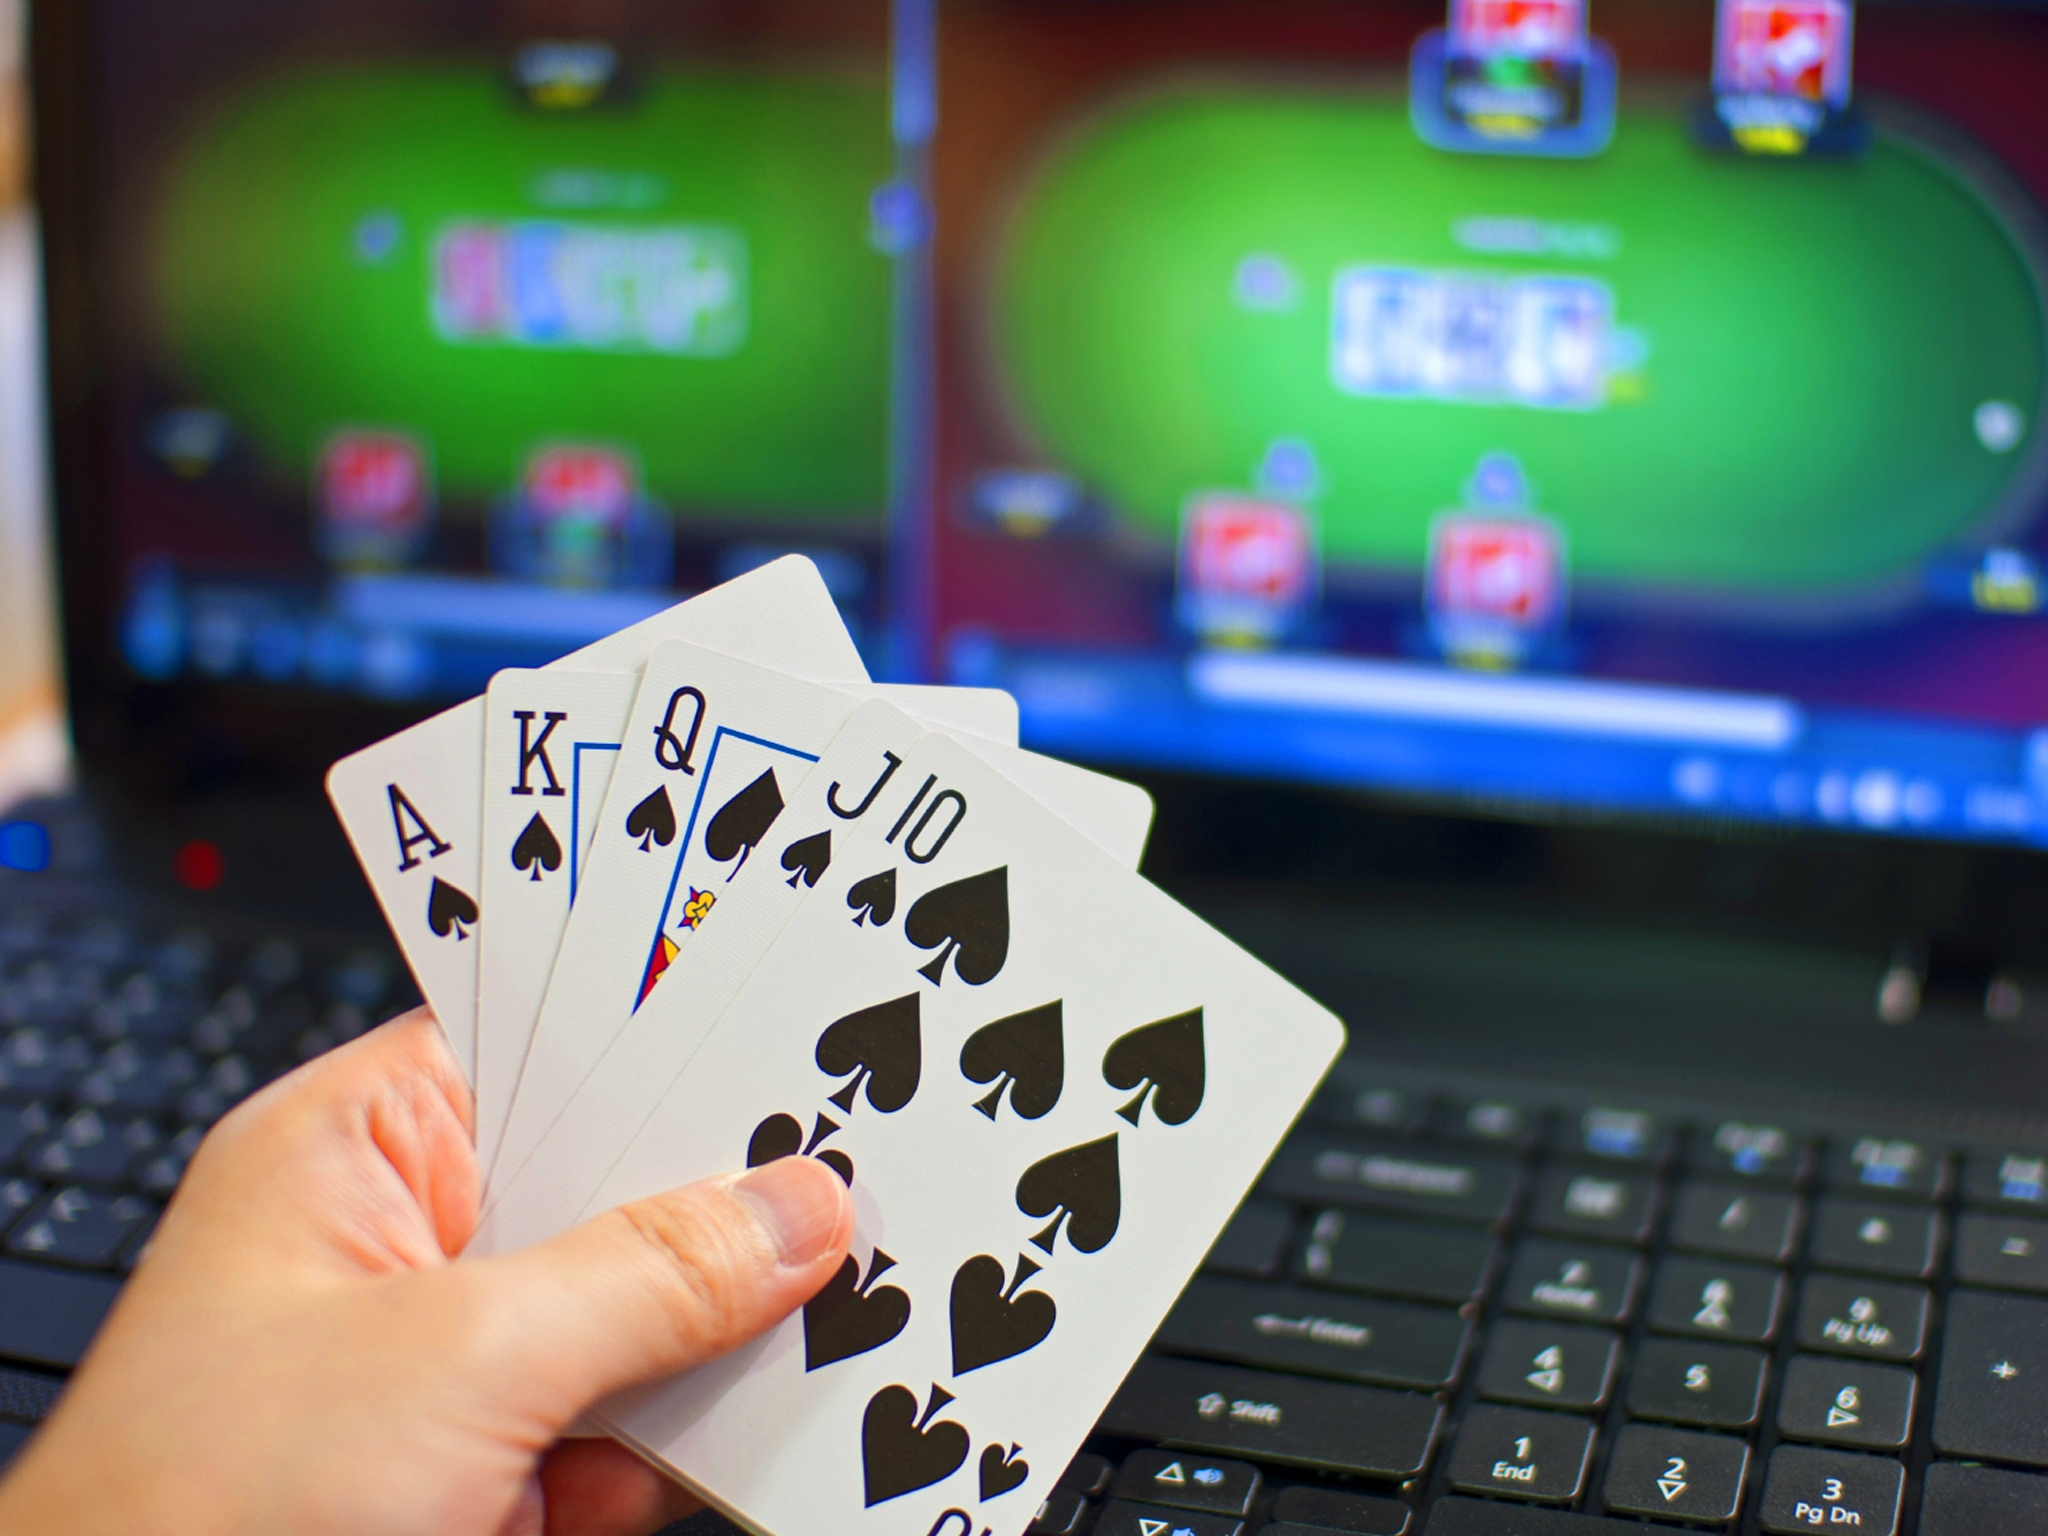 Casinos in New Zealand Things to see and do in New Zealand